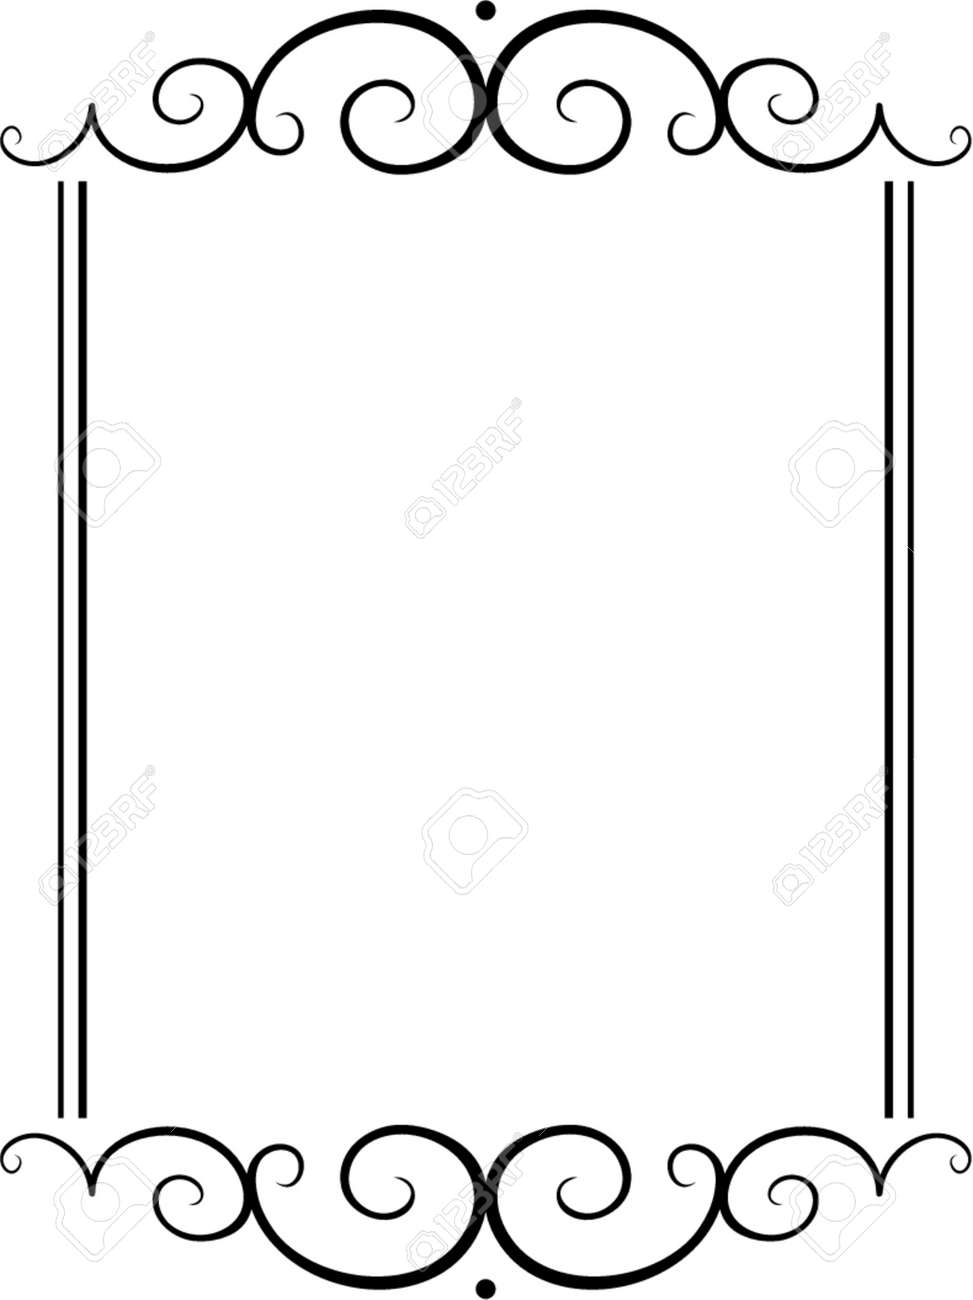 Vector decorative frame. This is a vector image - you can simply edit colors and shapes. Stock Vector - 562453